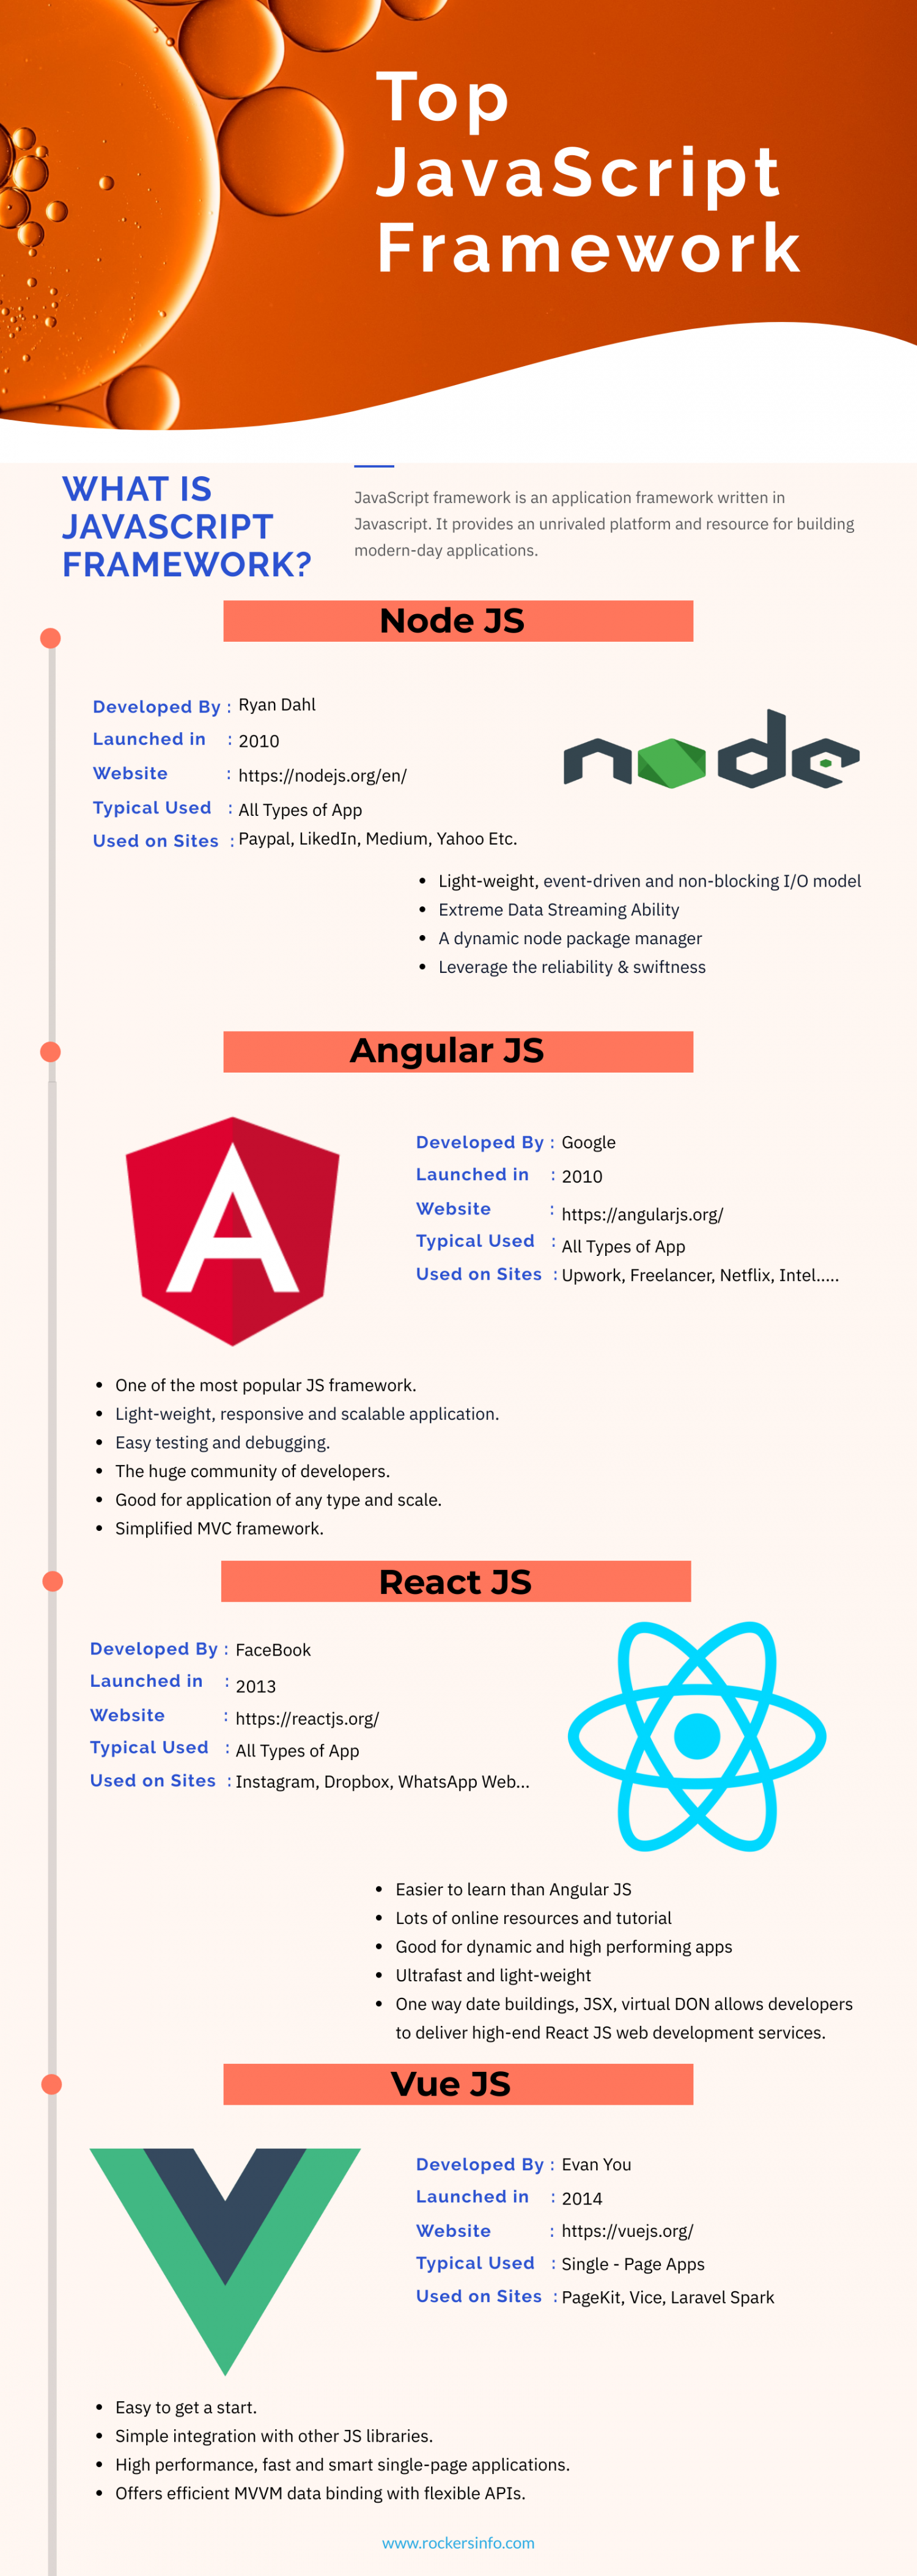 Top JavaScript Framework for 2020 Infographic